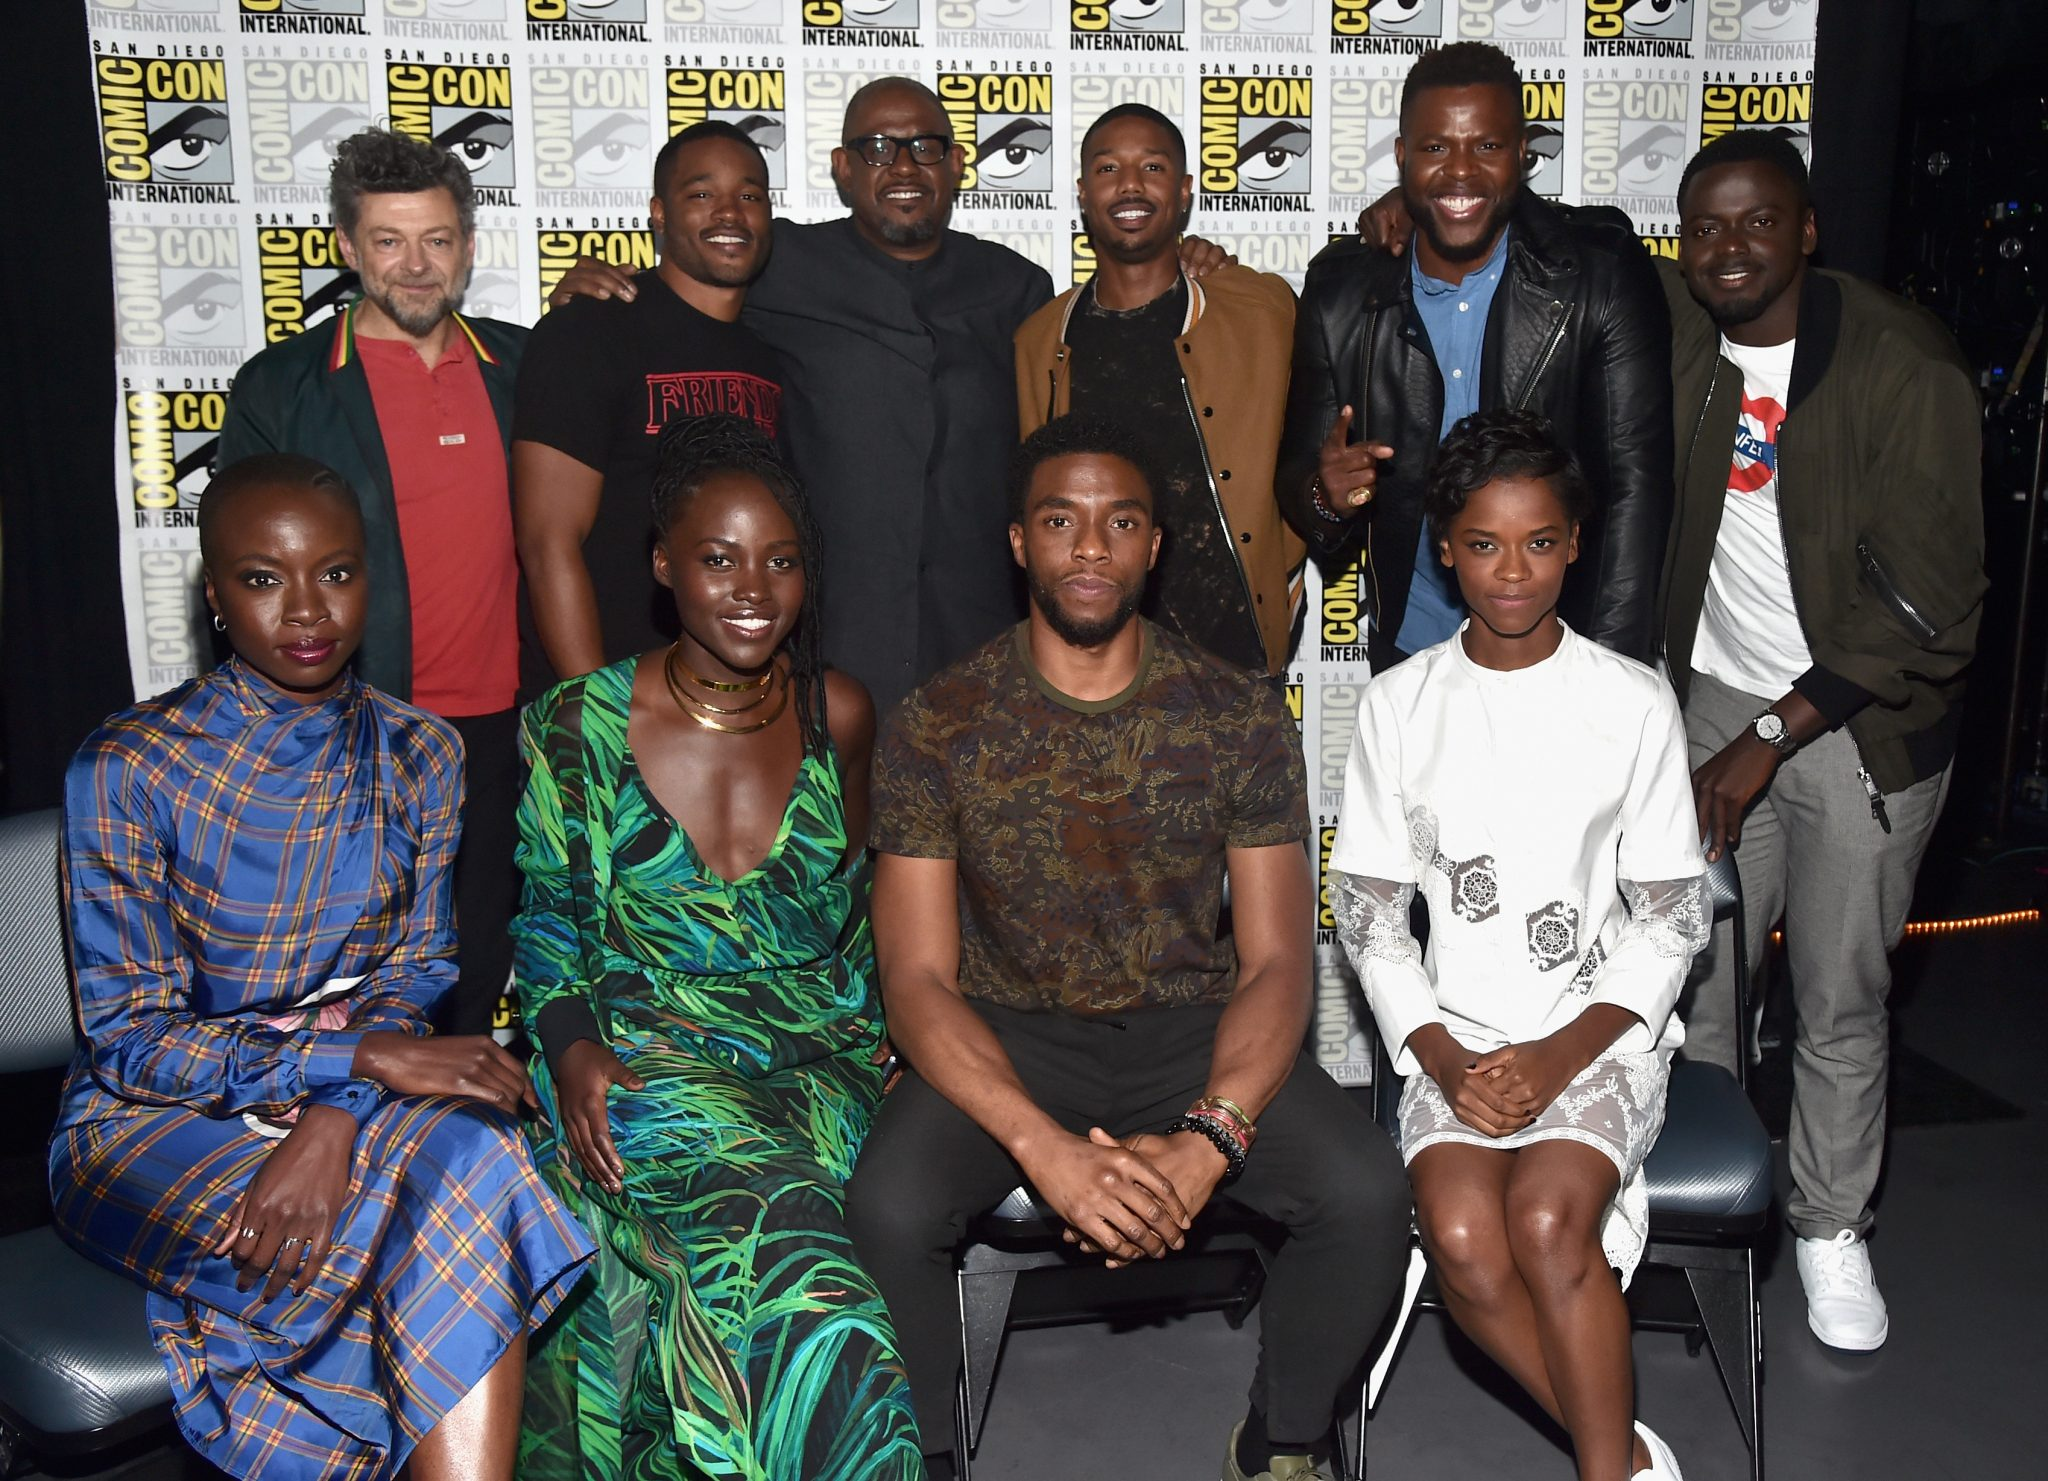 The Cast Of Black Panther Invade Comic Con